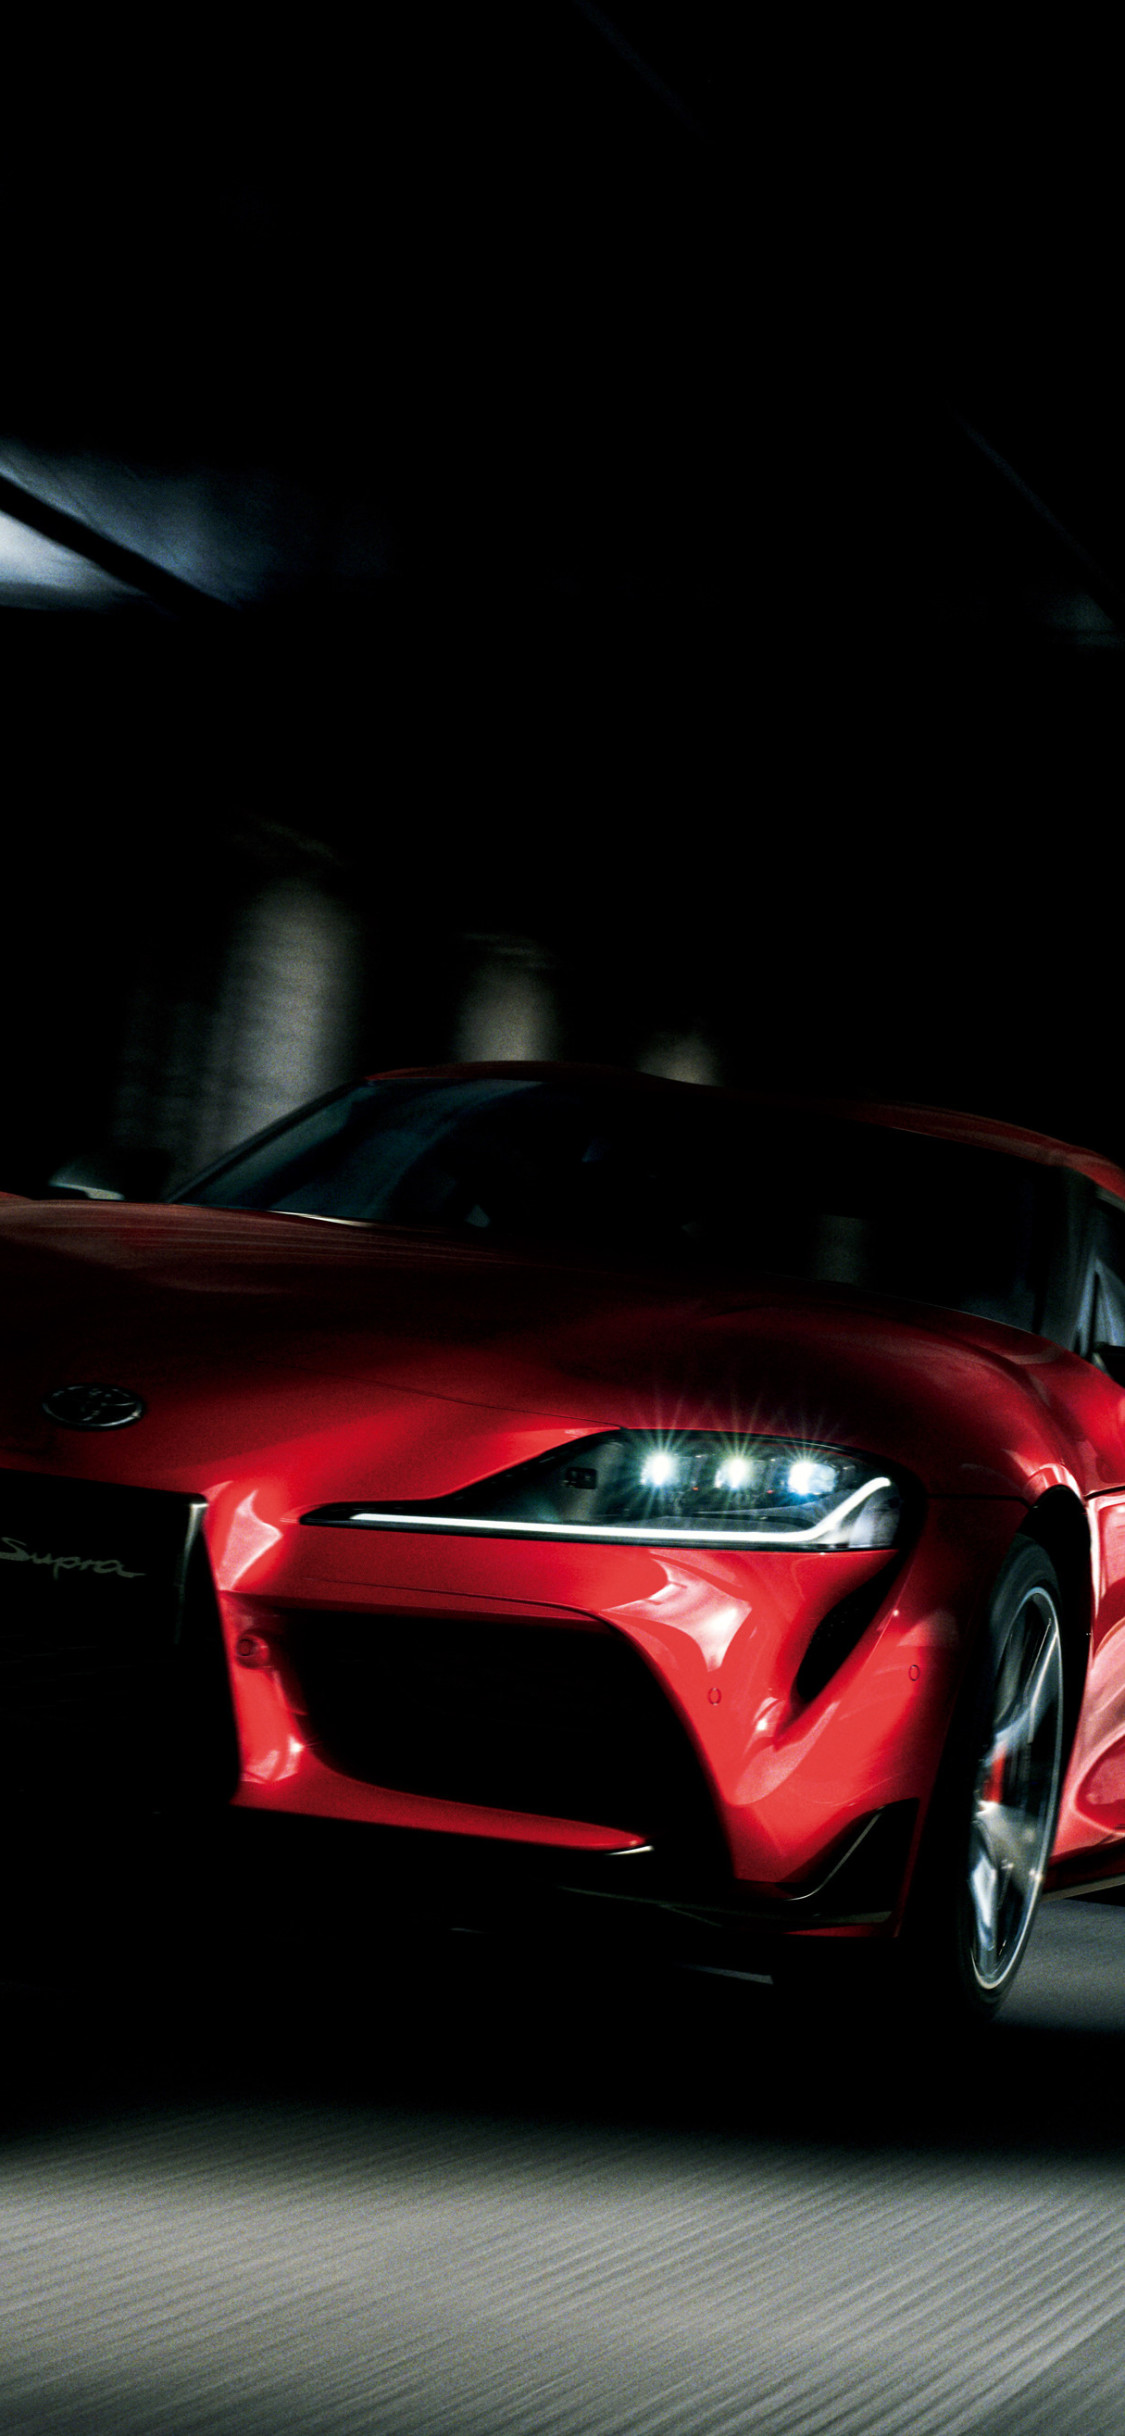 Toyota Supra Hd Phone 1125x2436 Wallpaper Teahub Io